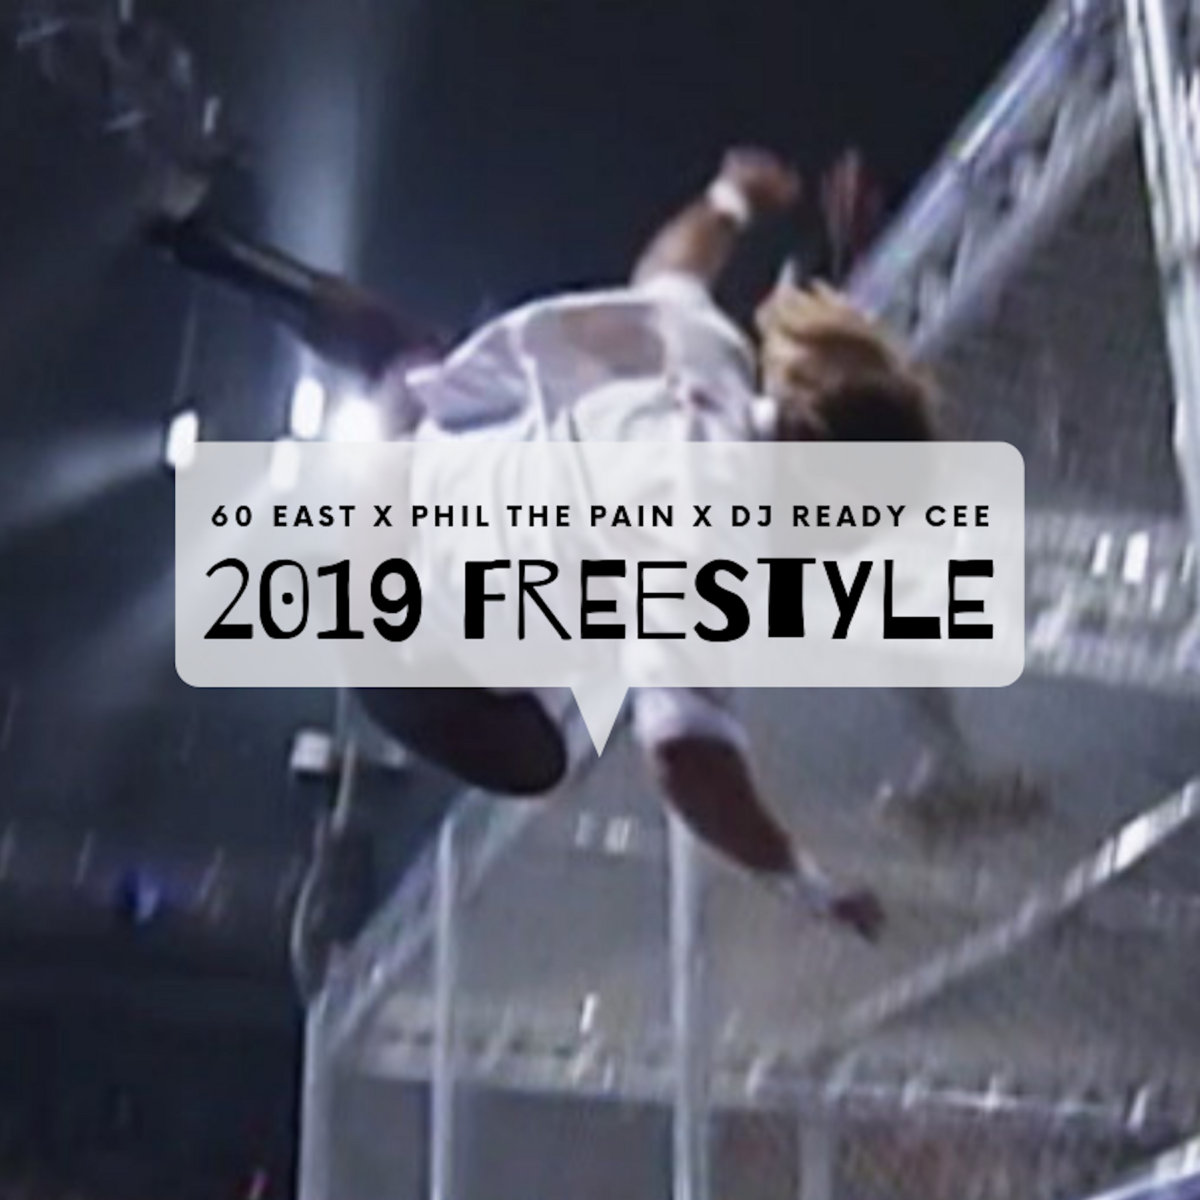 2019 Freestyle by 60 East